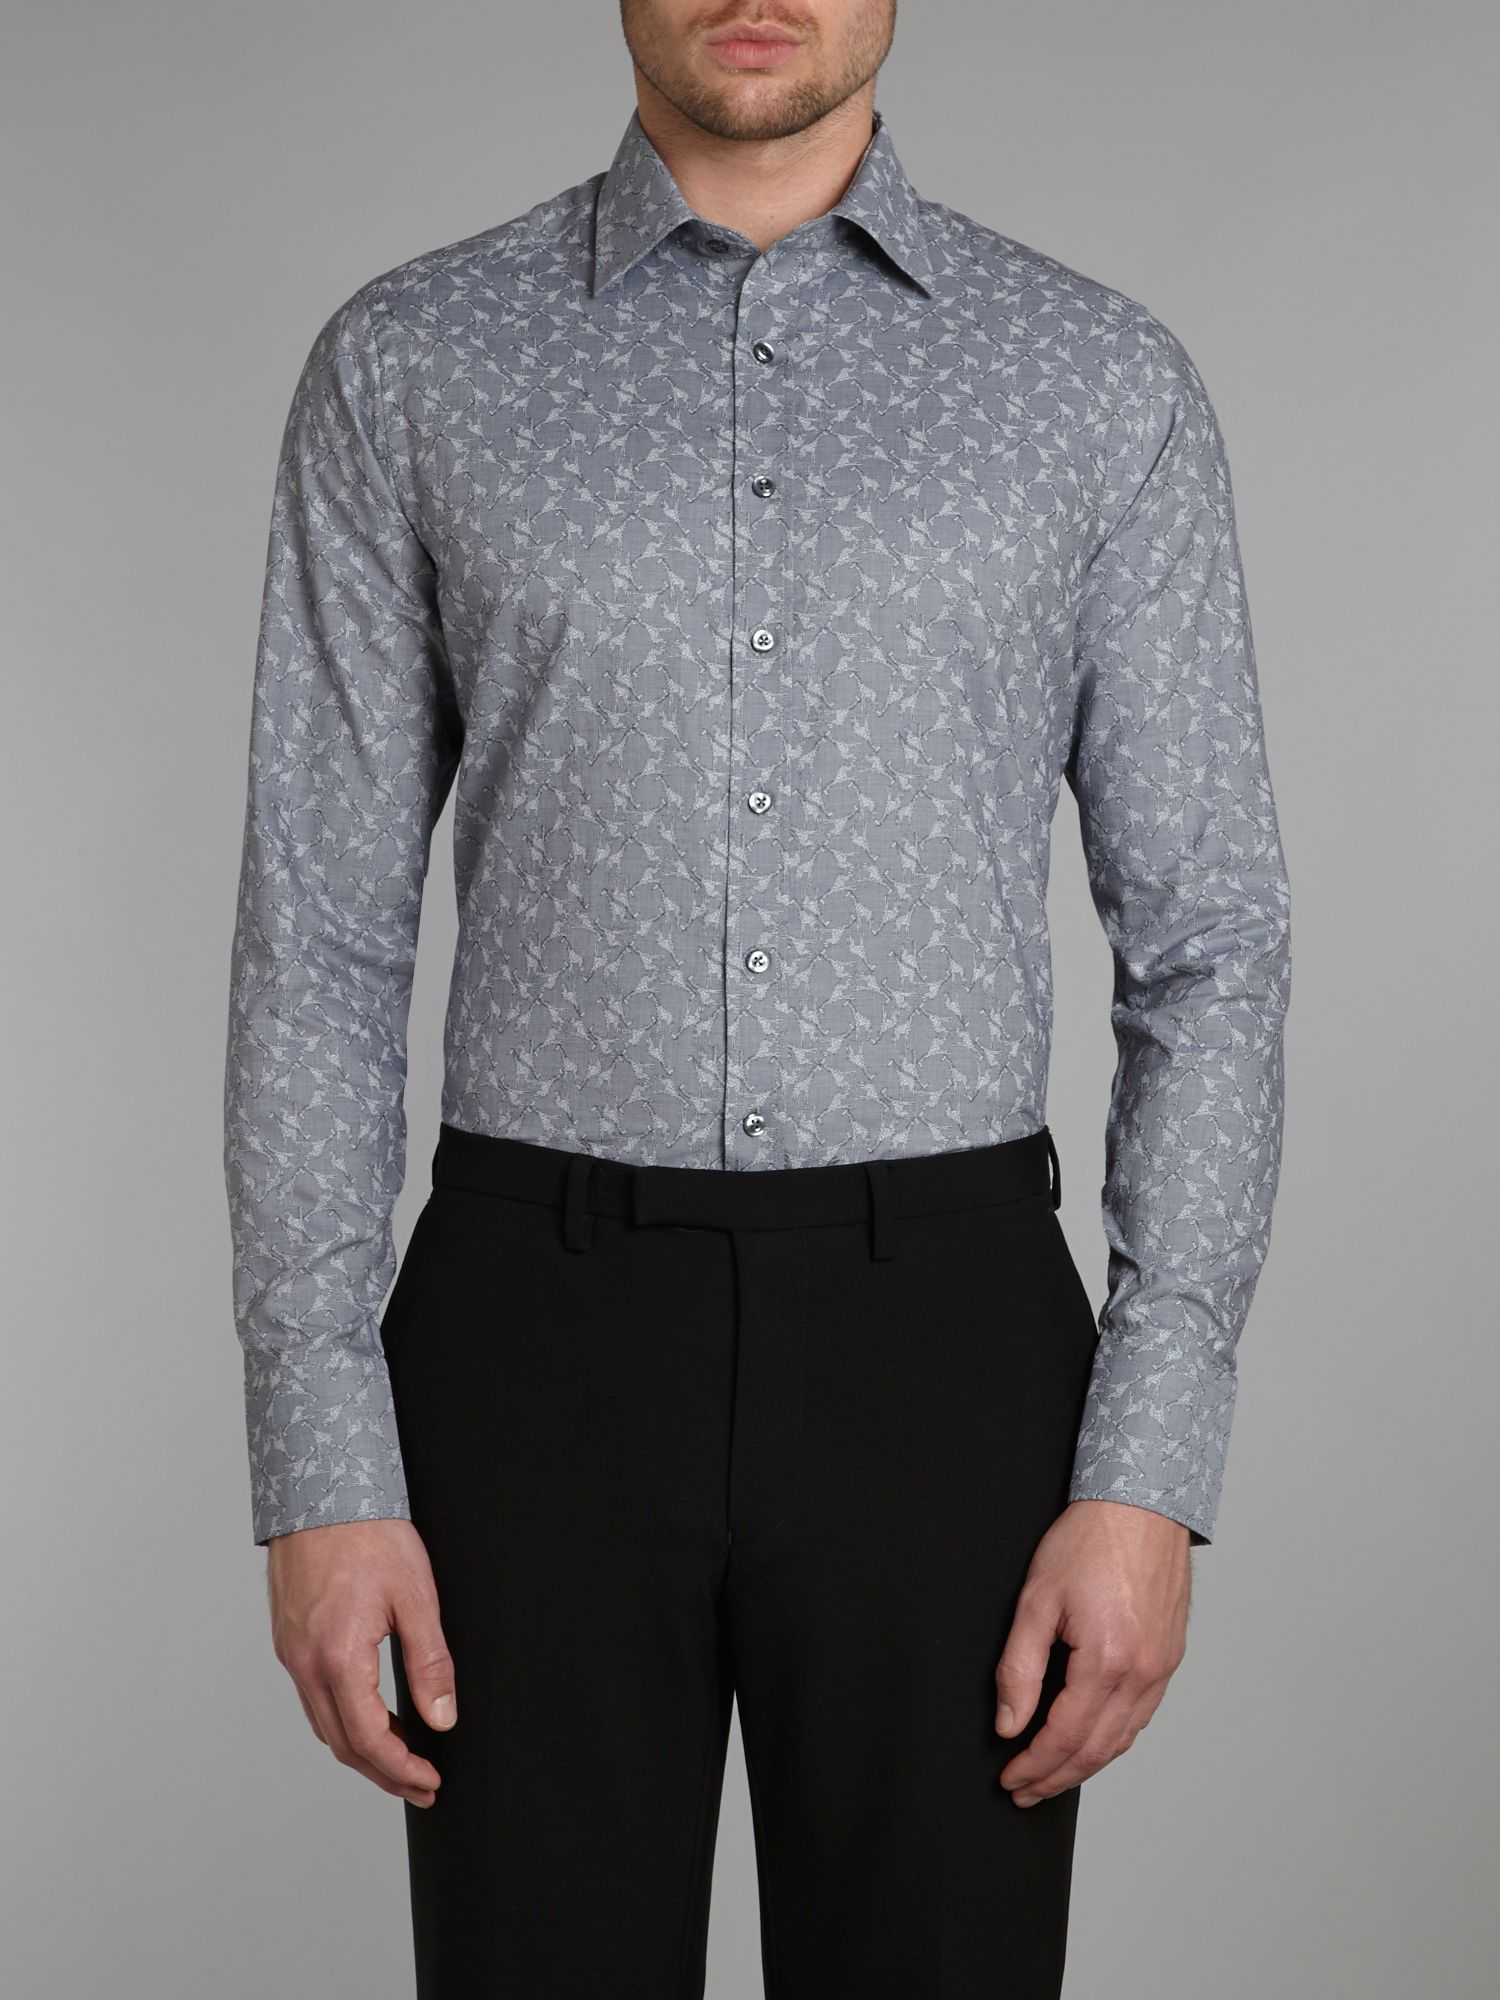 Giraffe jacquard slim fit shirt